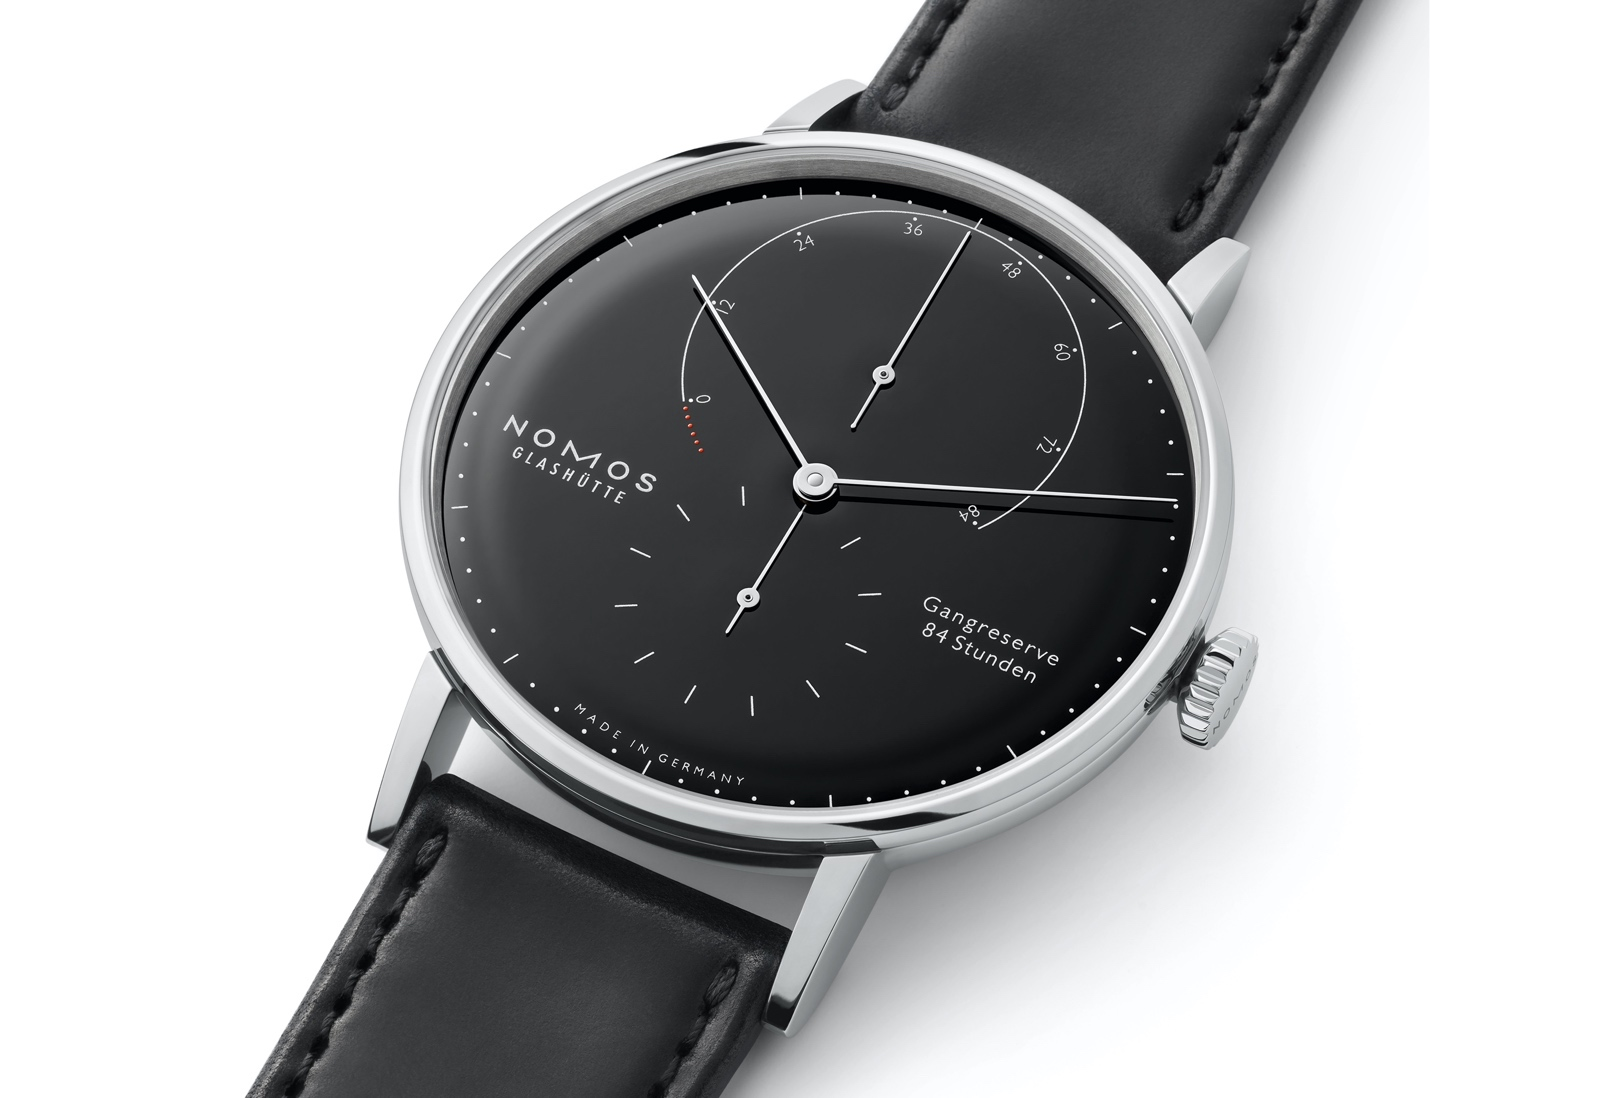 Nomos Lambda 175 Years Watchmaking Glashütte - black dial